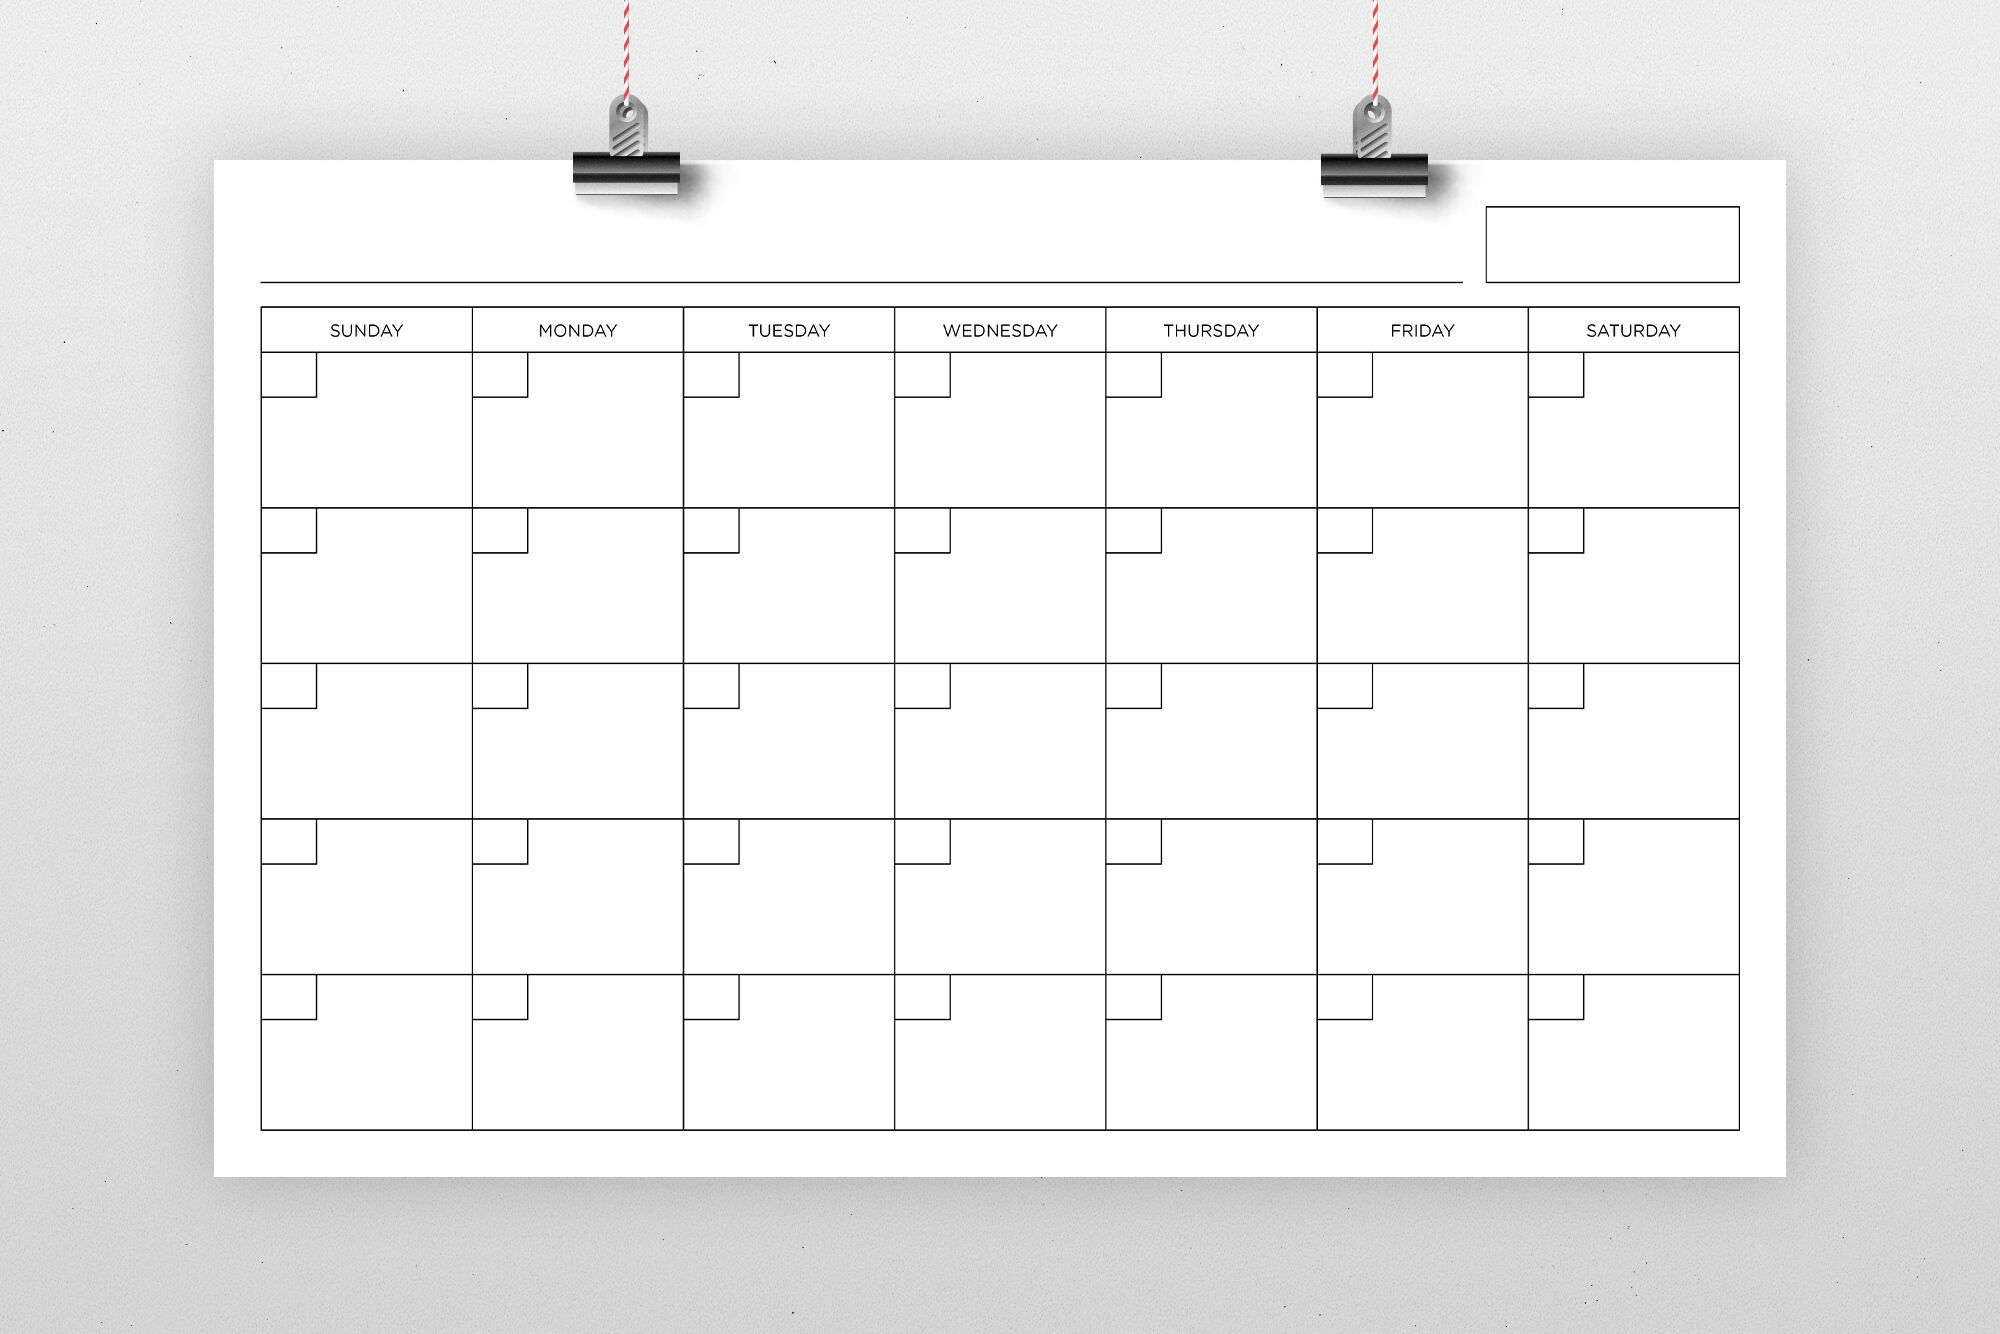 11×17 Inch Blank Calendar Page Templaterunning With